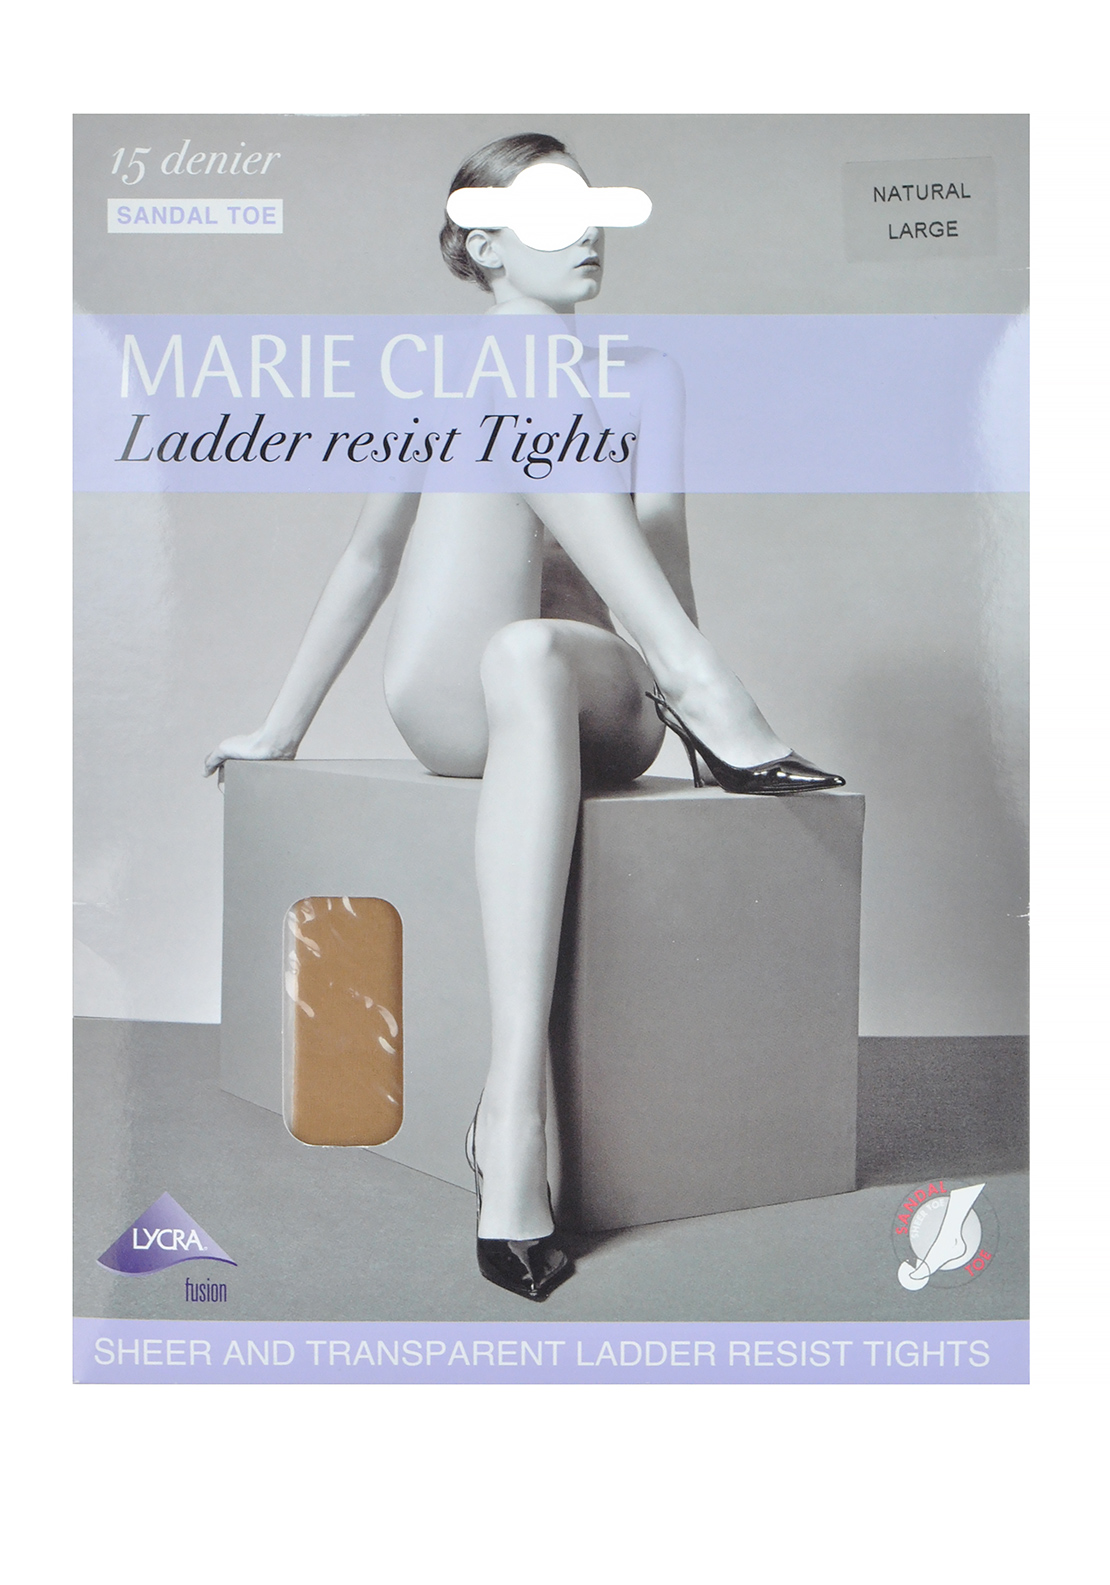 Marie Claire 15 Denier Ladder Resist Tights, Natural